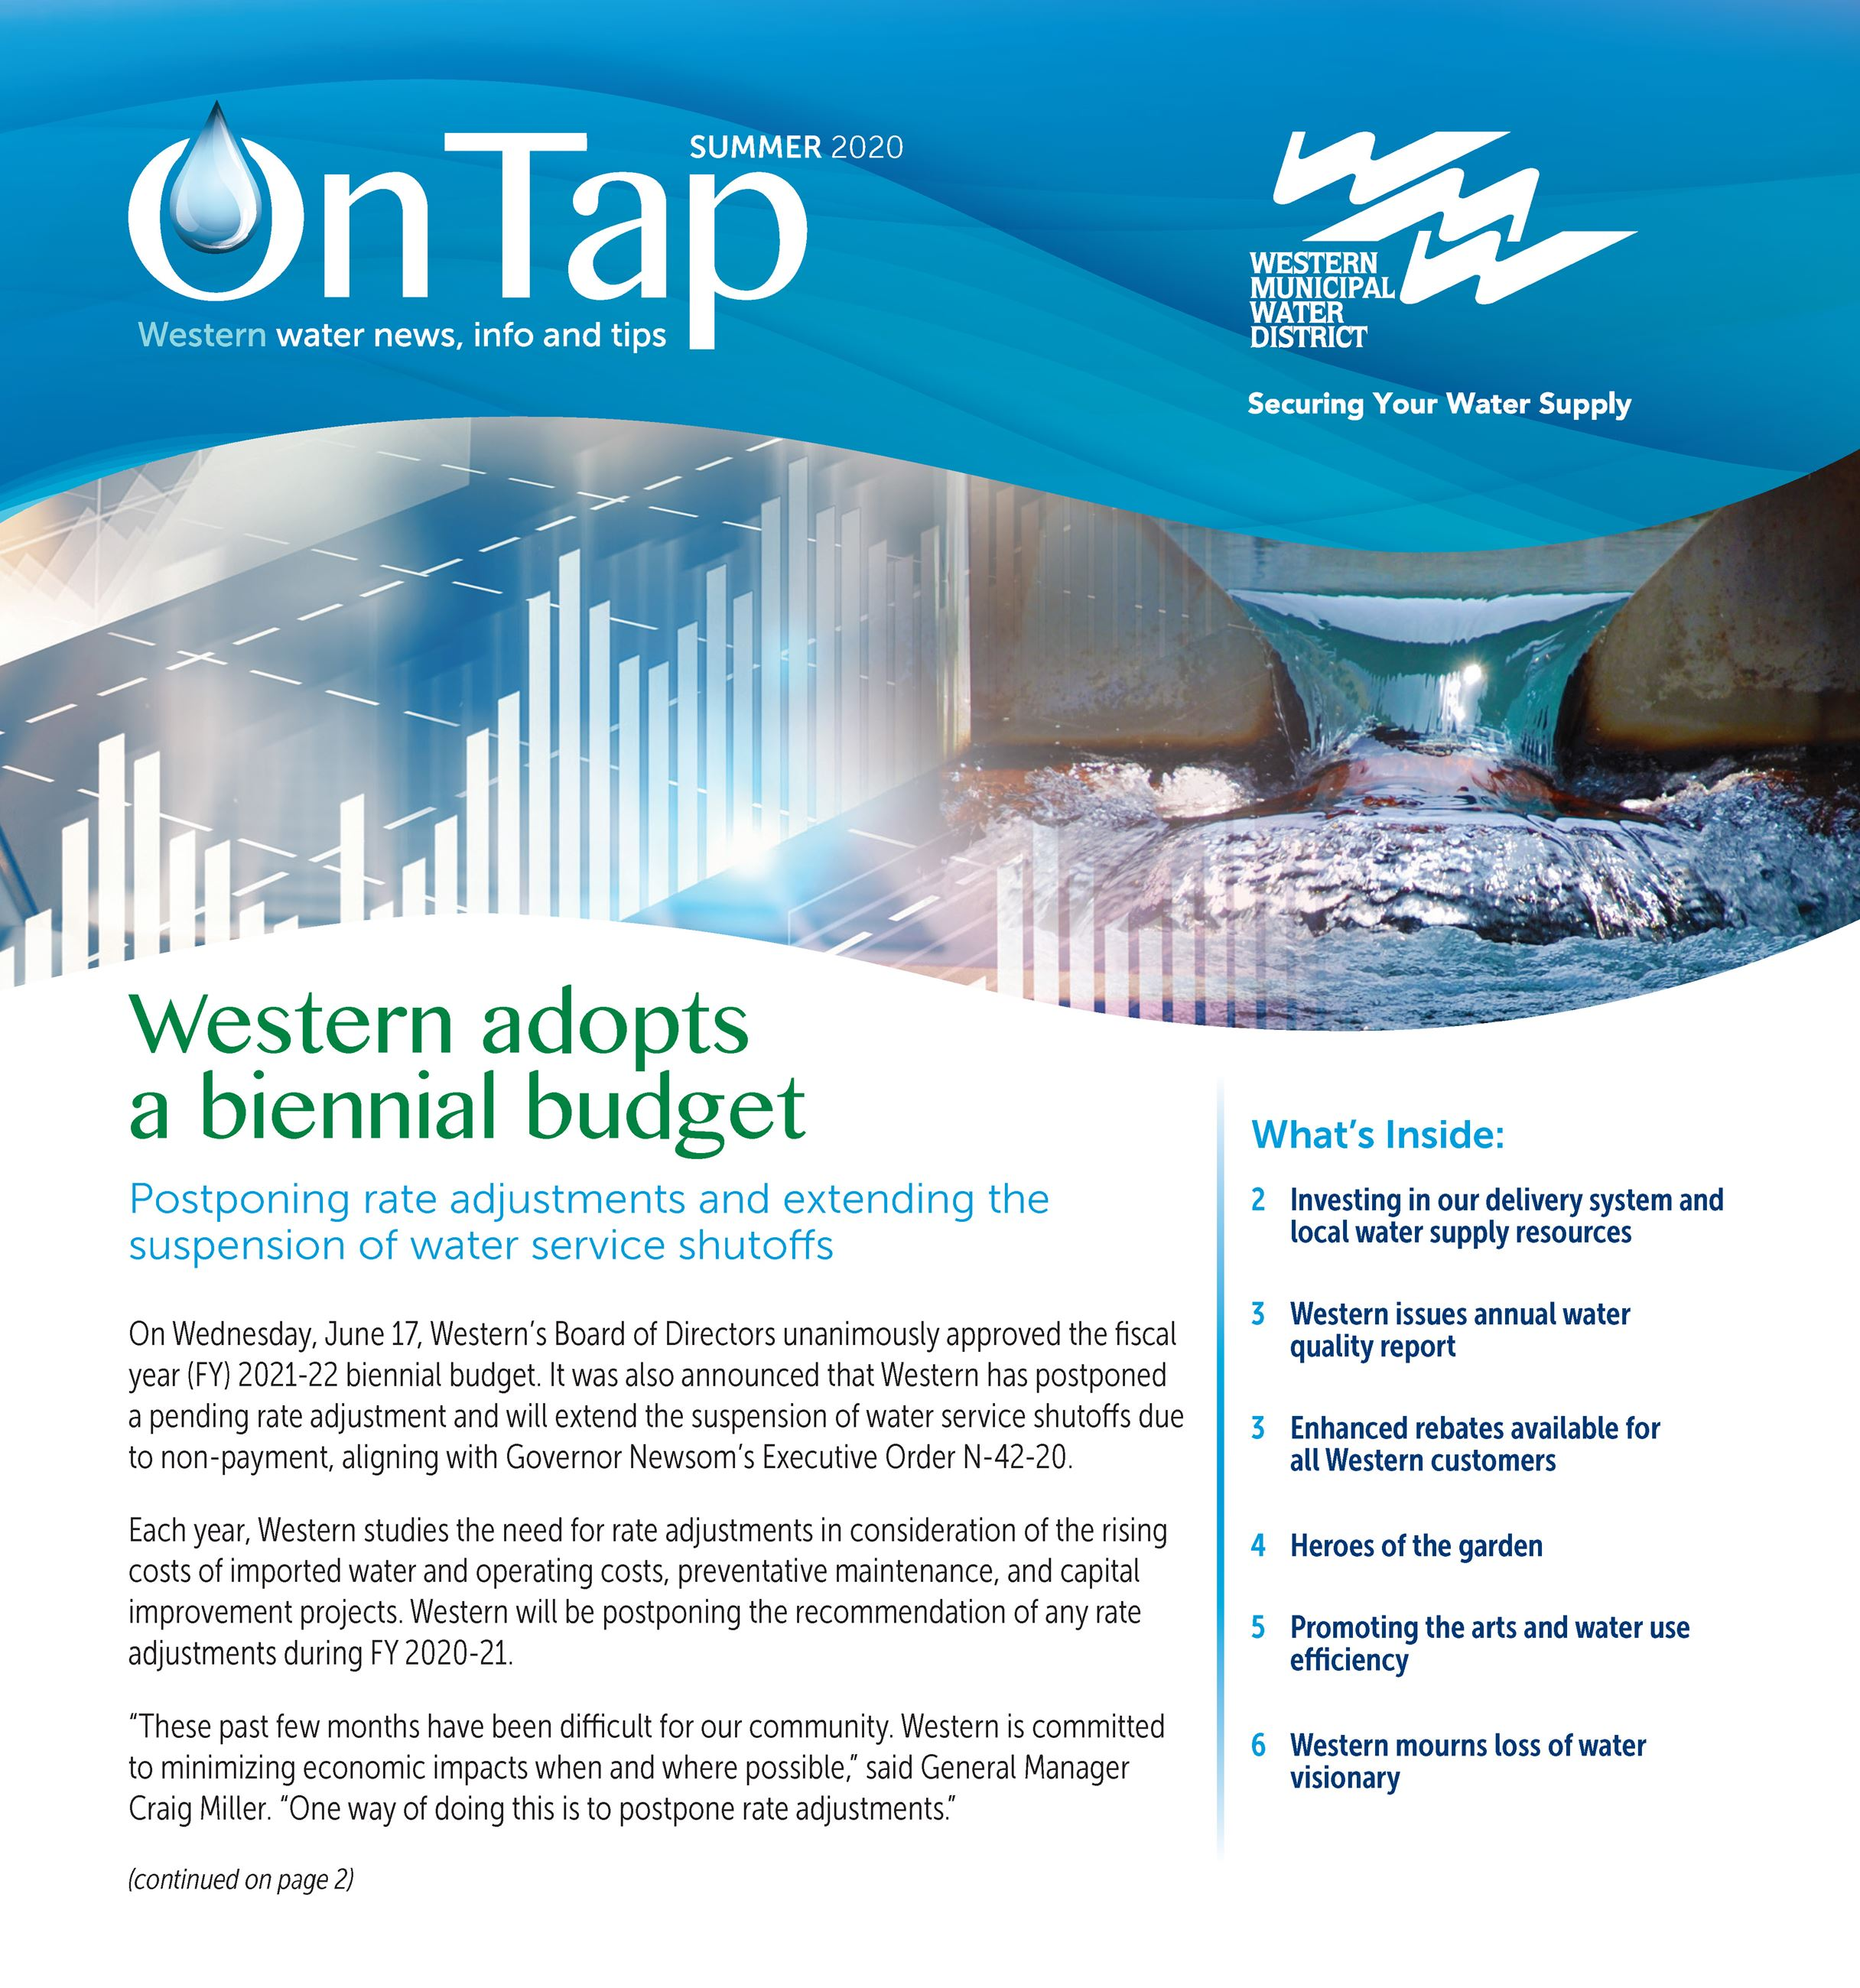 OnTap_Summer2020_Cover